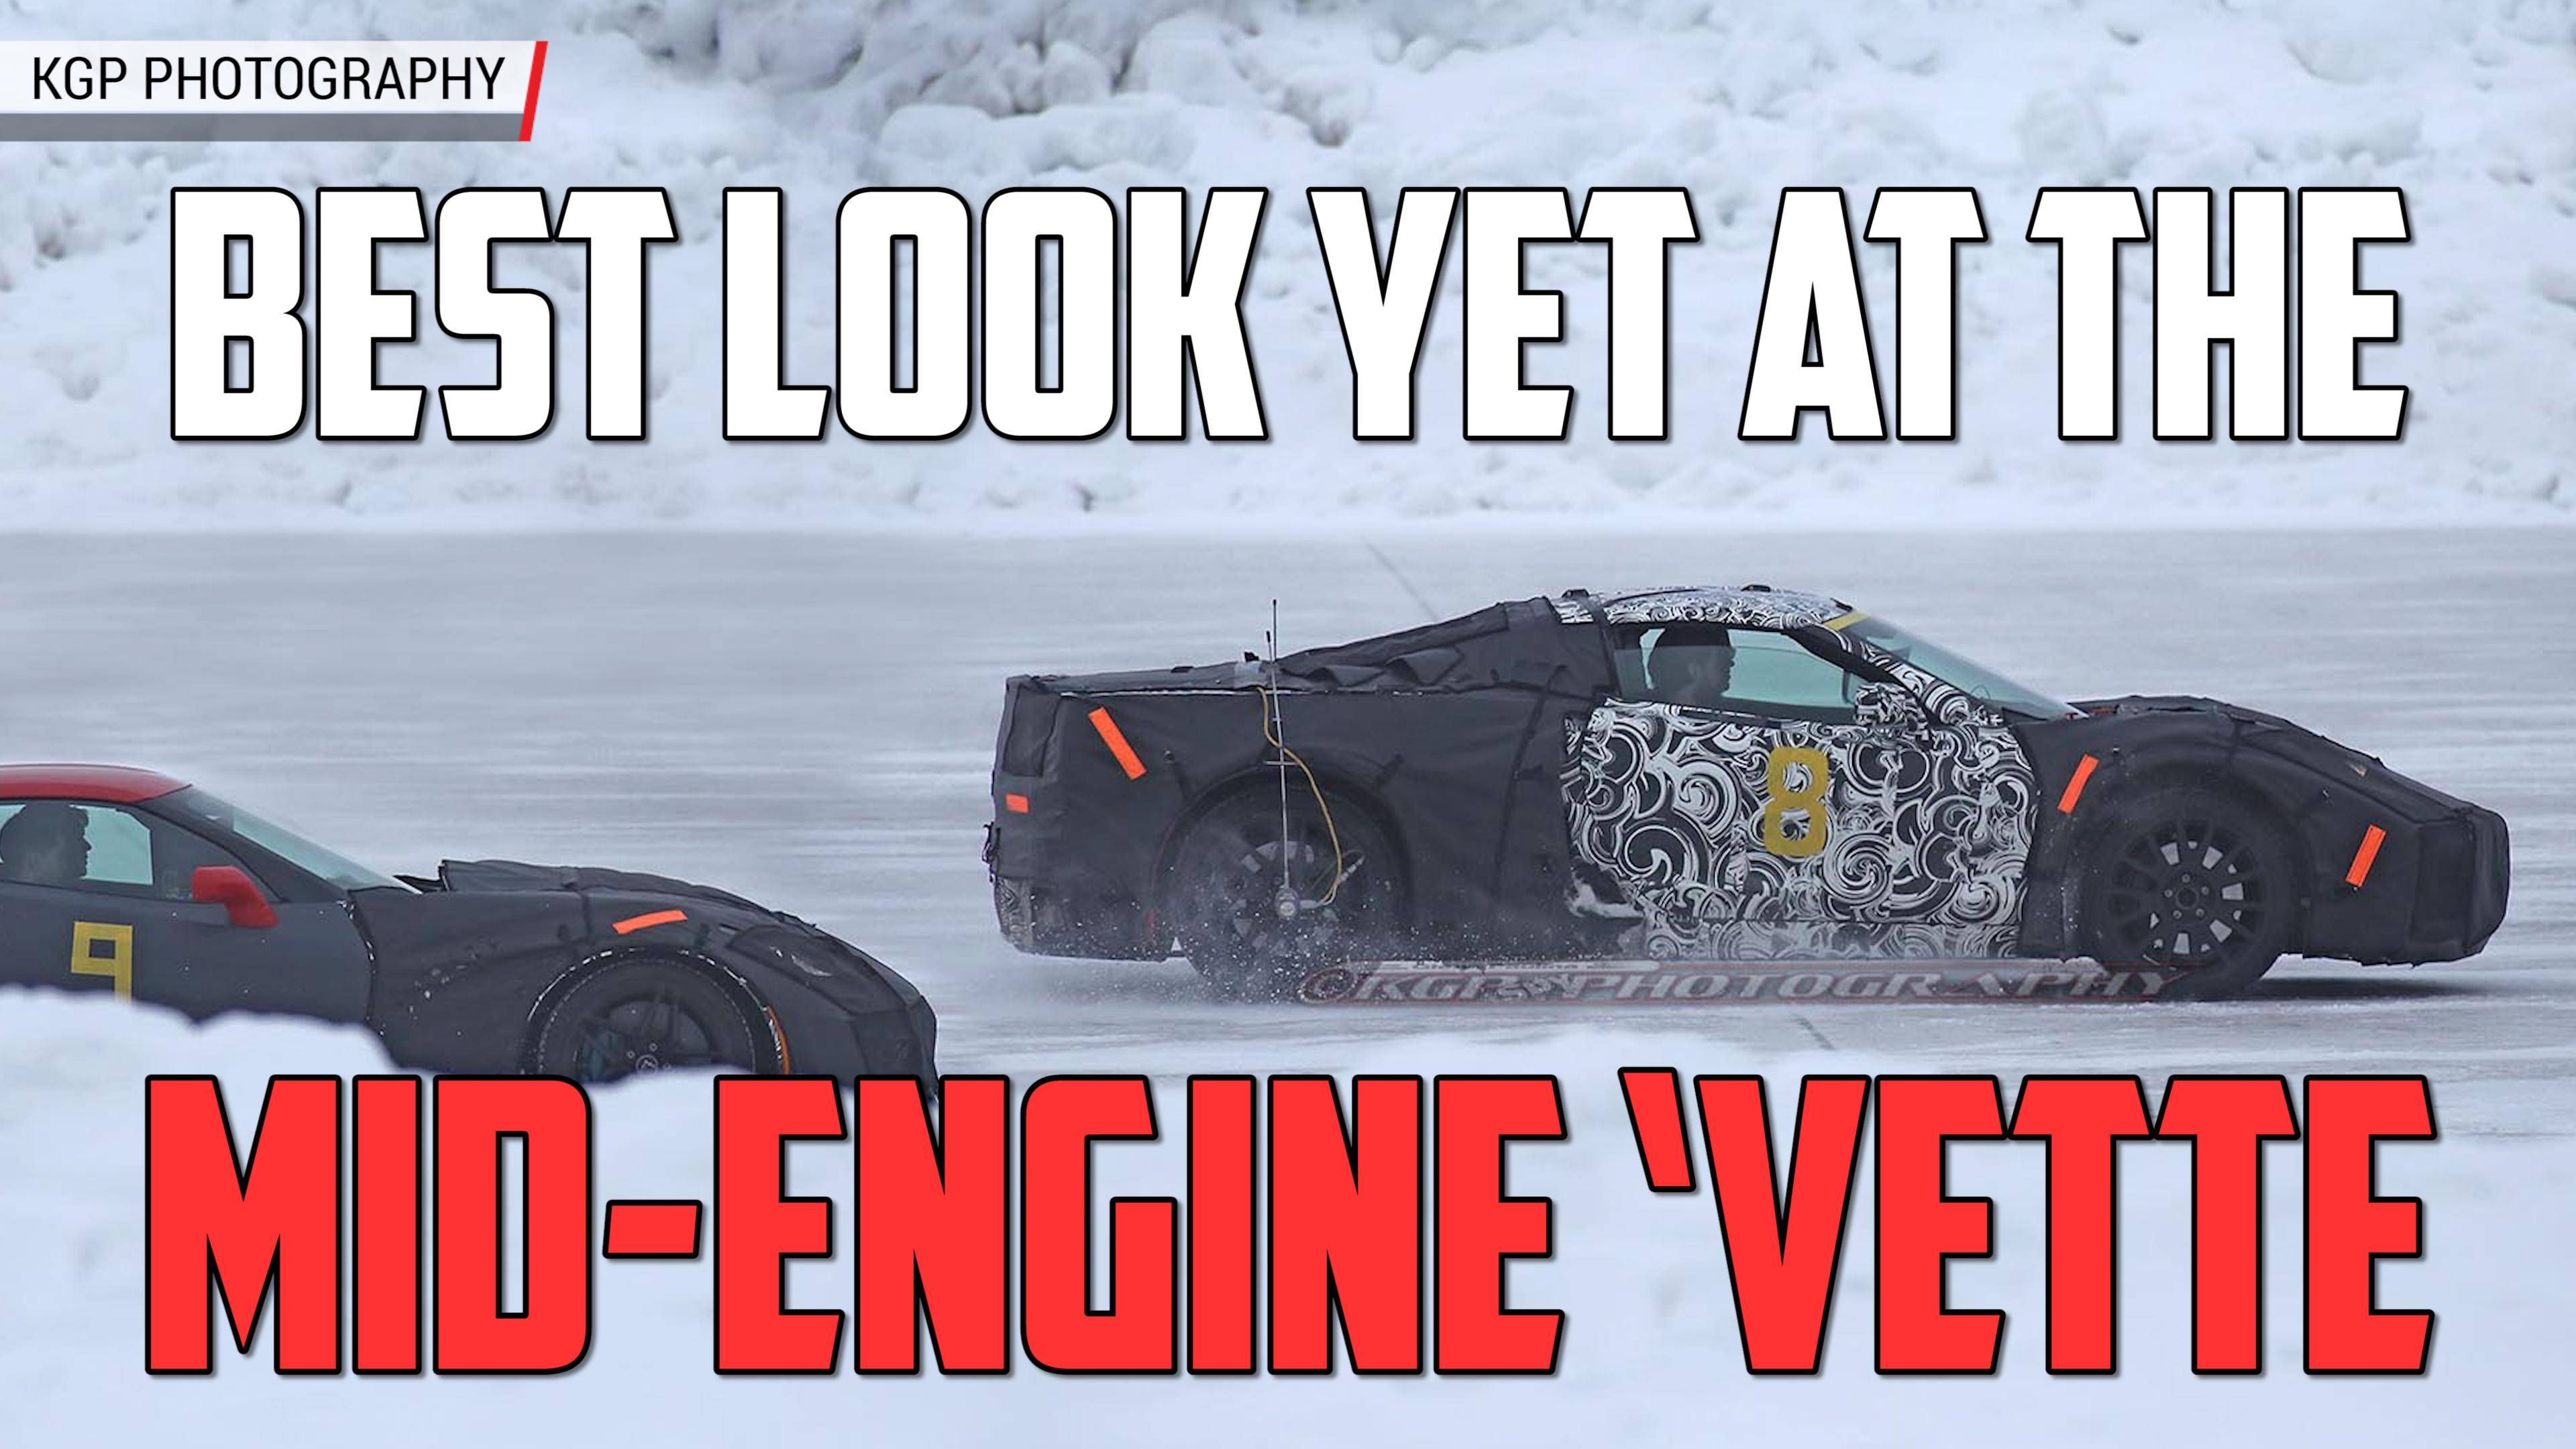 Secrets of the next Corvette's engine and lineup, all